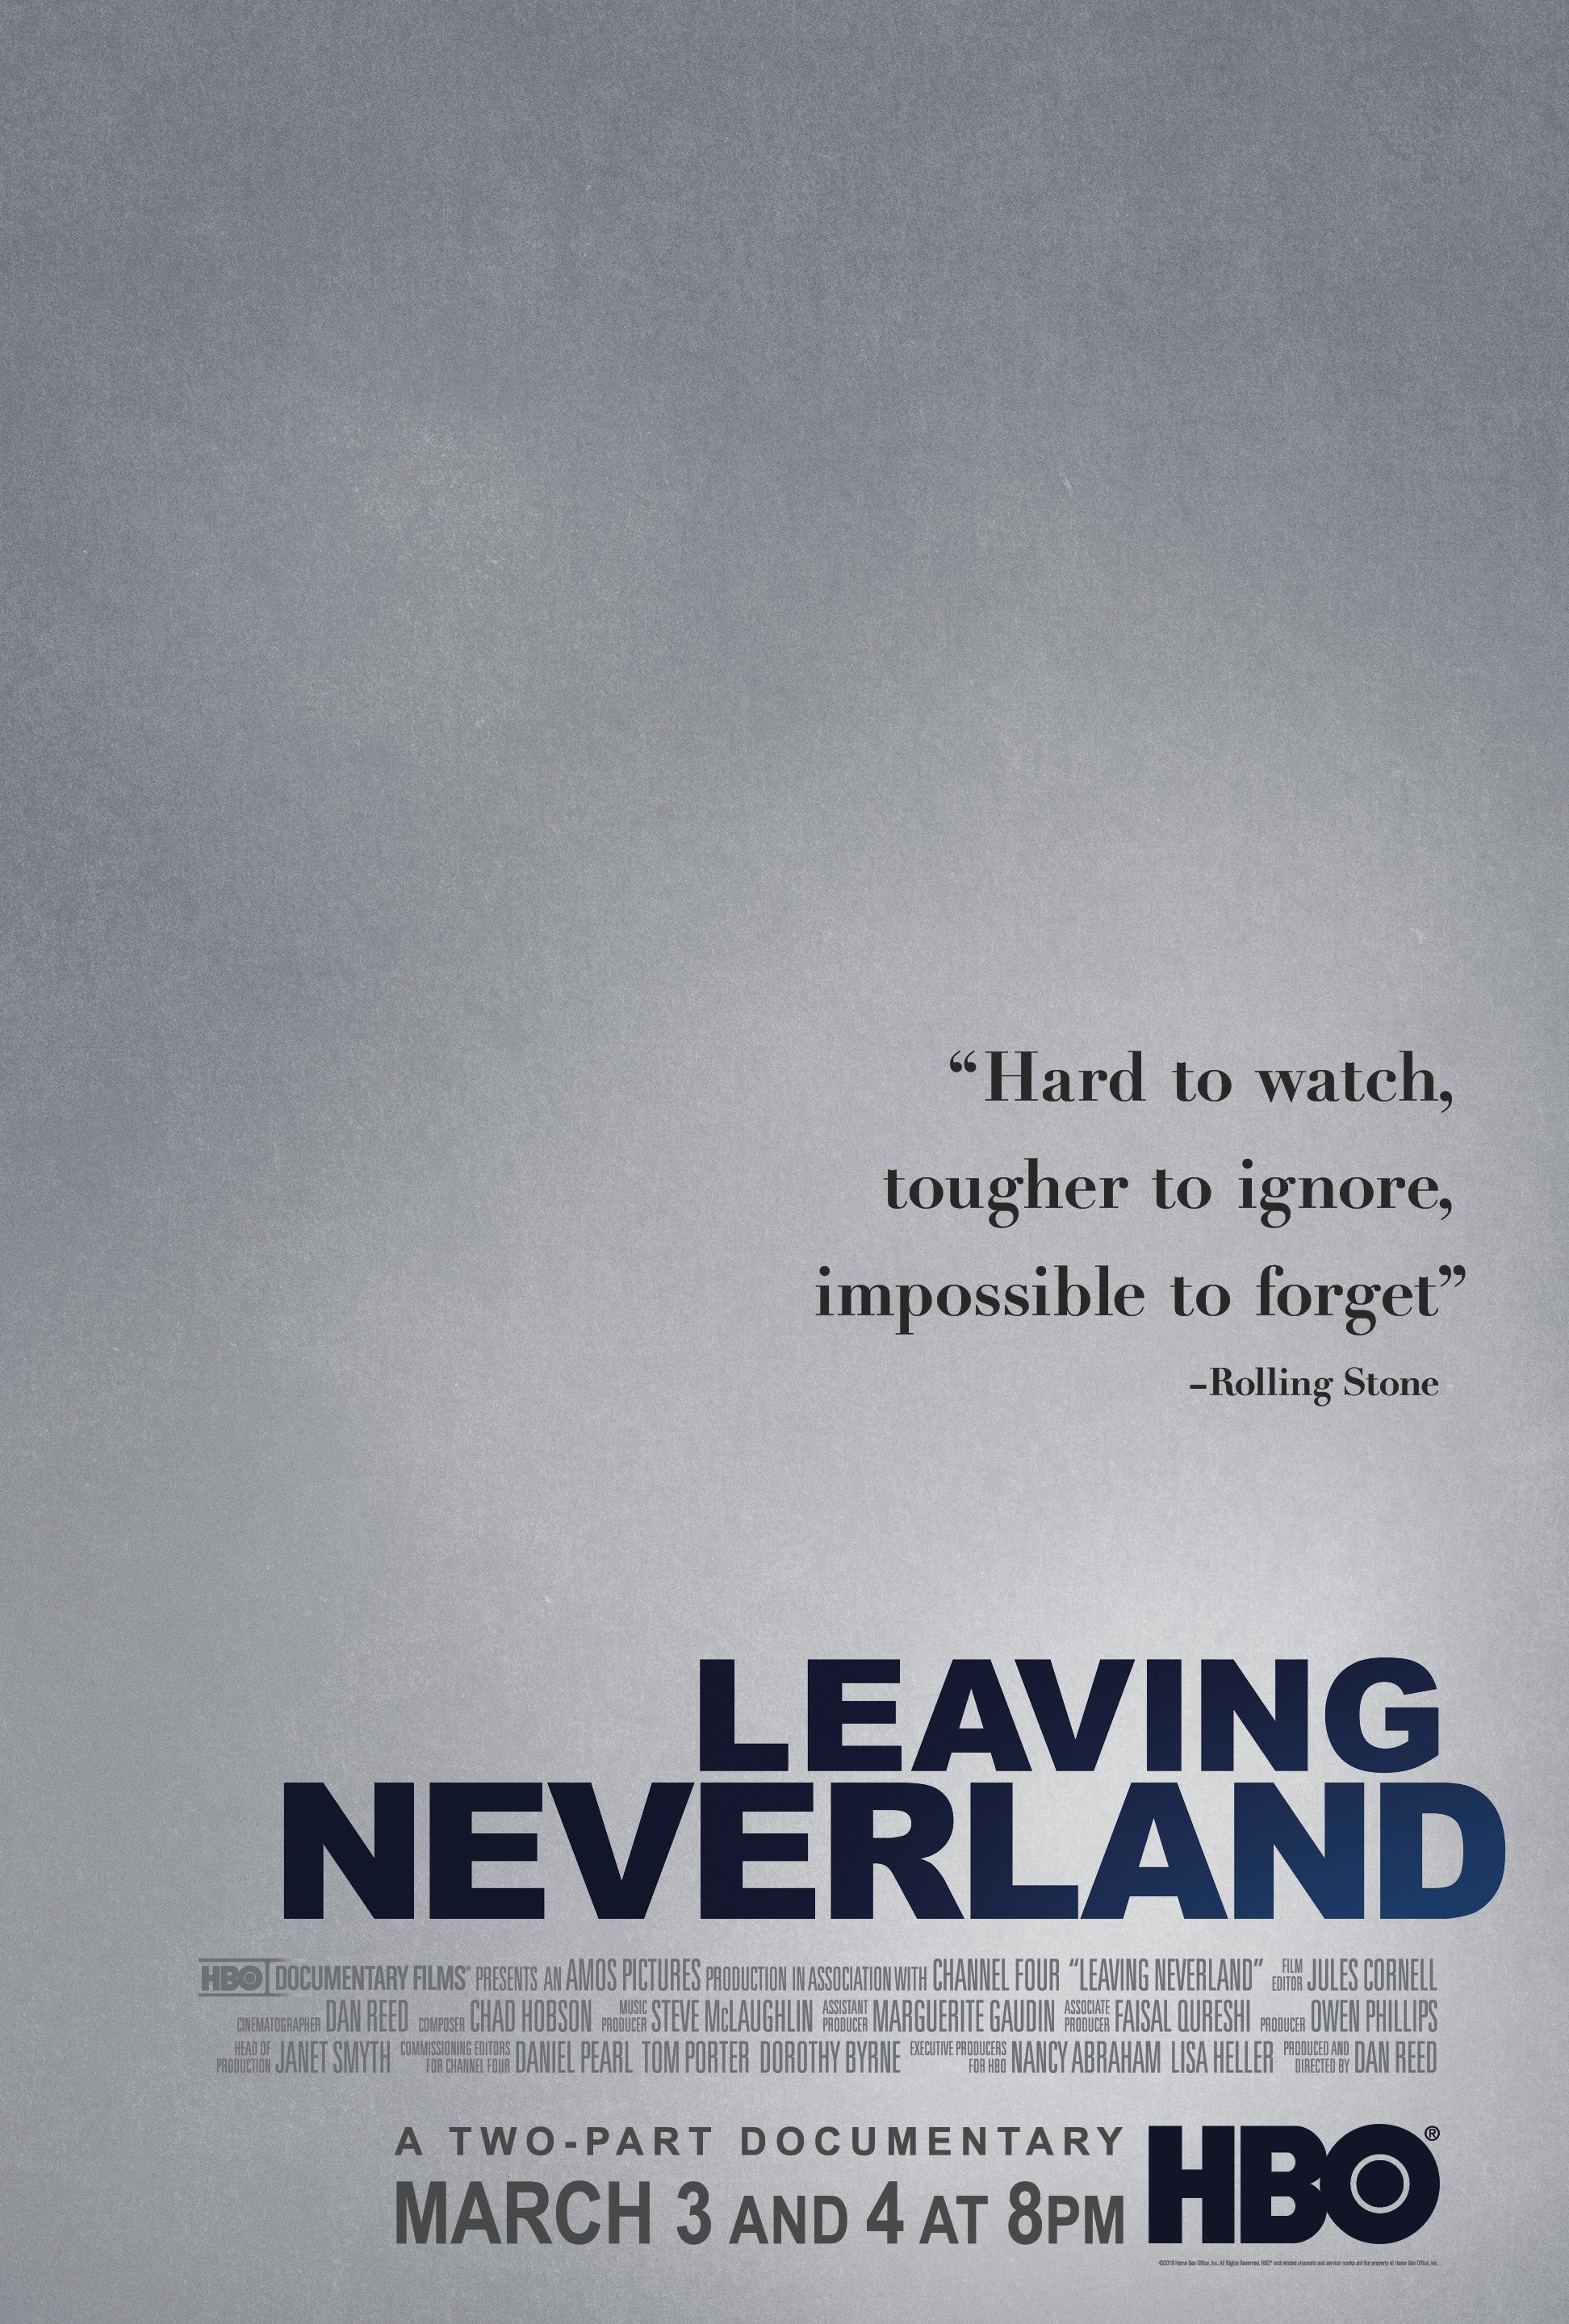 Leaving Neverland (2019) - IMDb